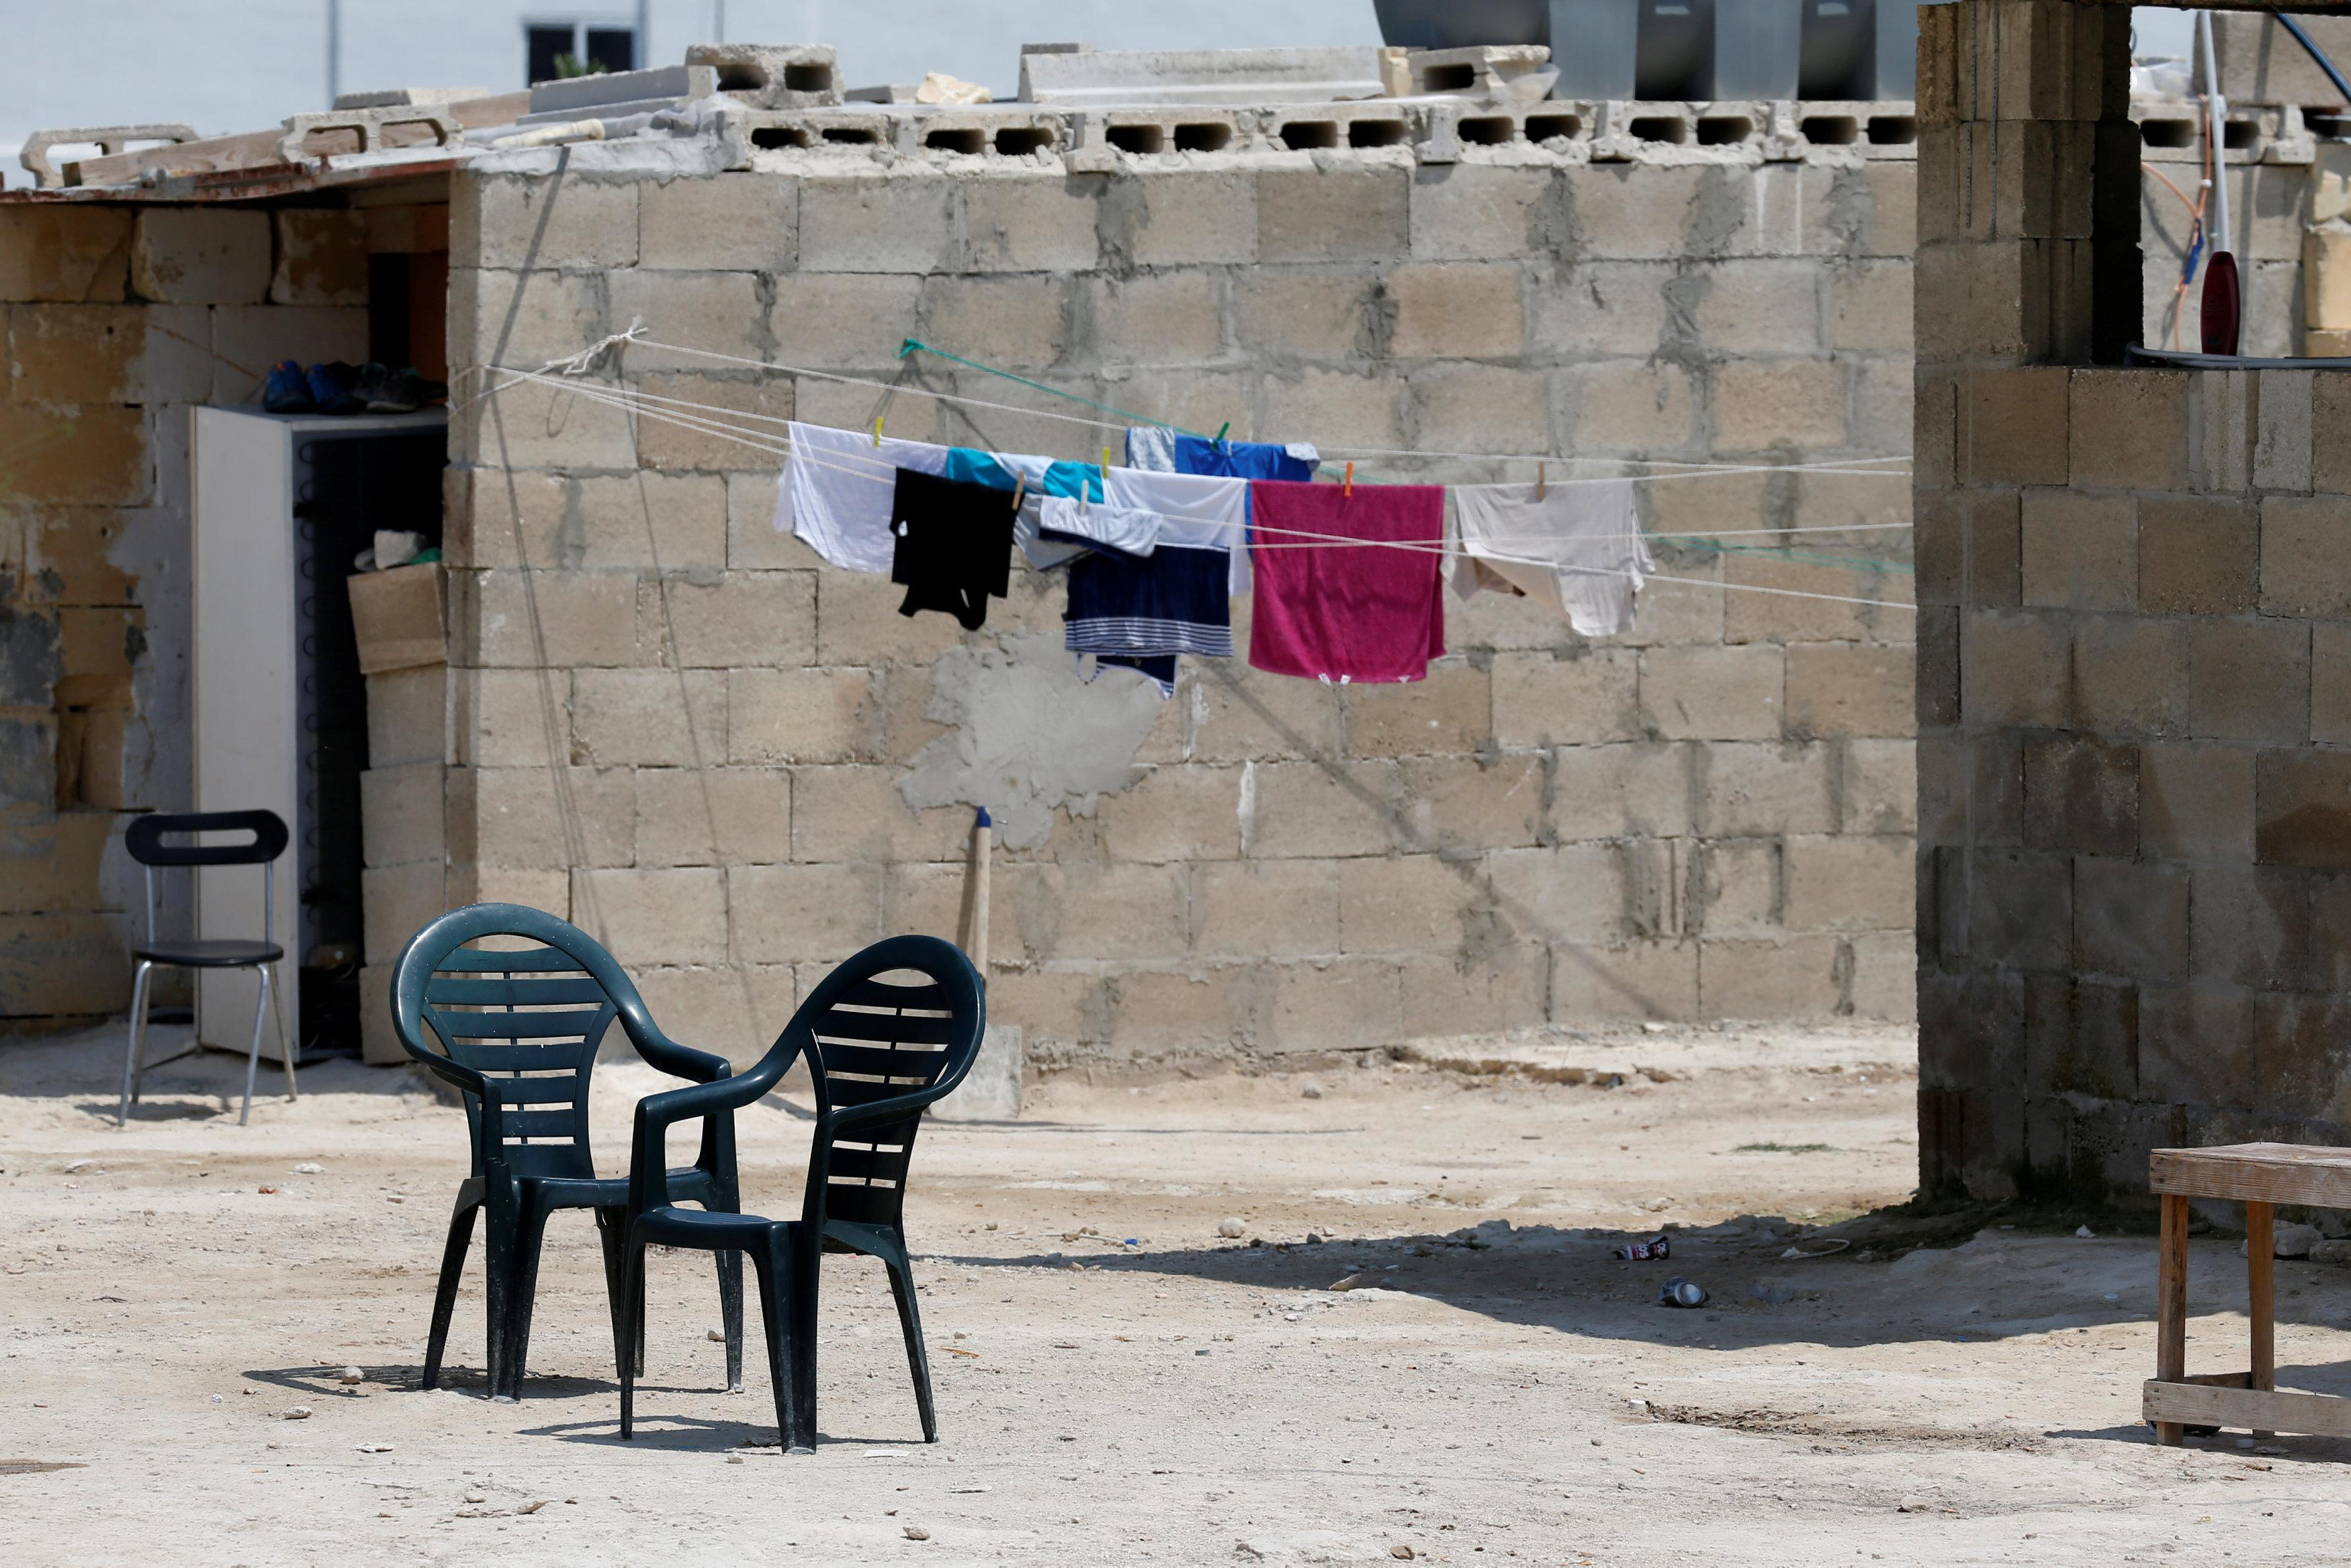 Migrants' possessions and furniture are seen on a farm where police evicted some 110 African migrants who had been living in stalls formerly used by cows, in Qormi, Malta August 13, 2018.  Darrin Zammit Lupi